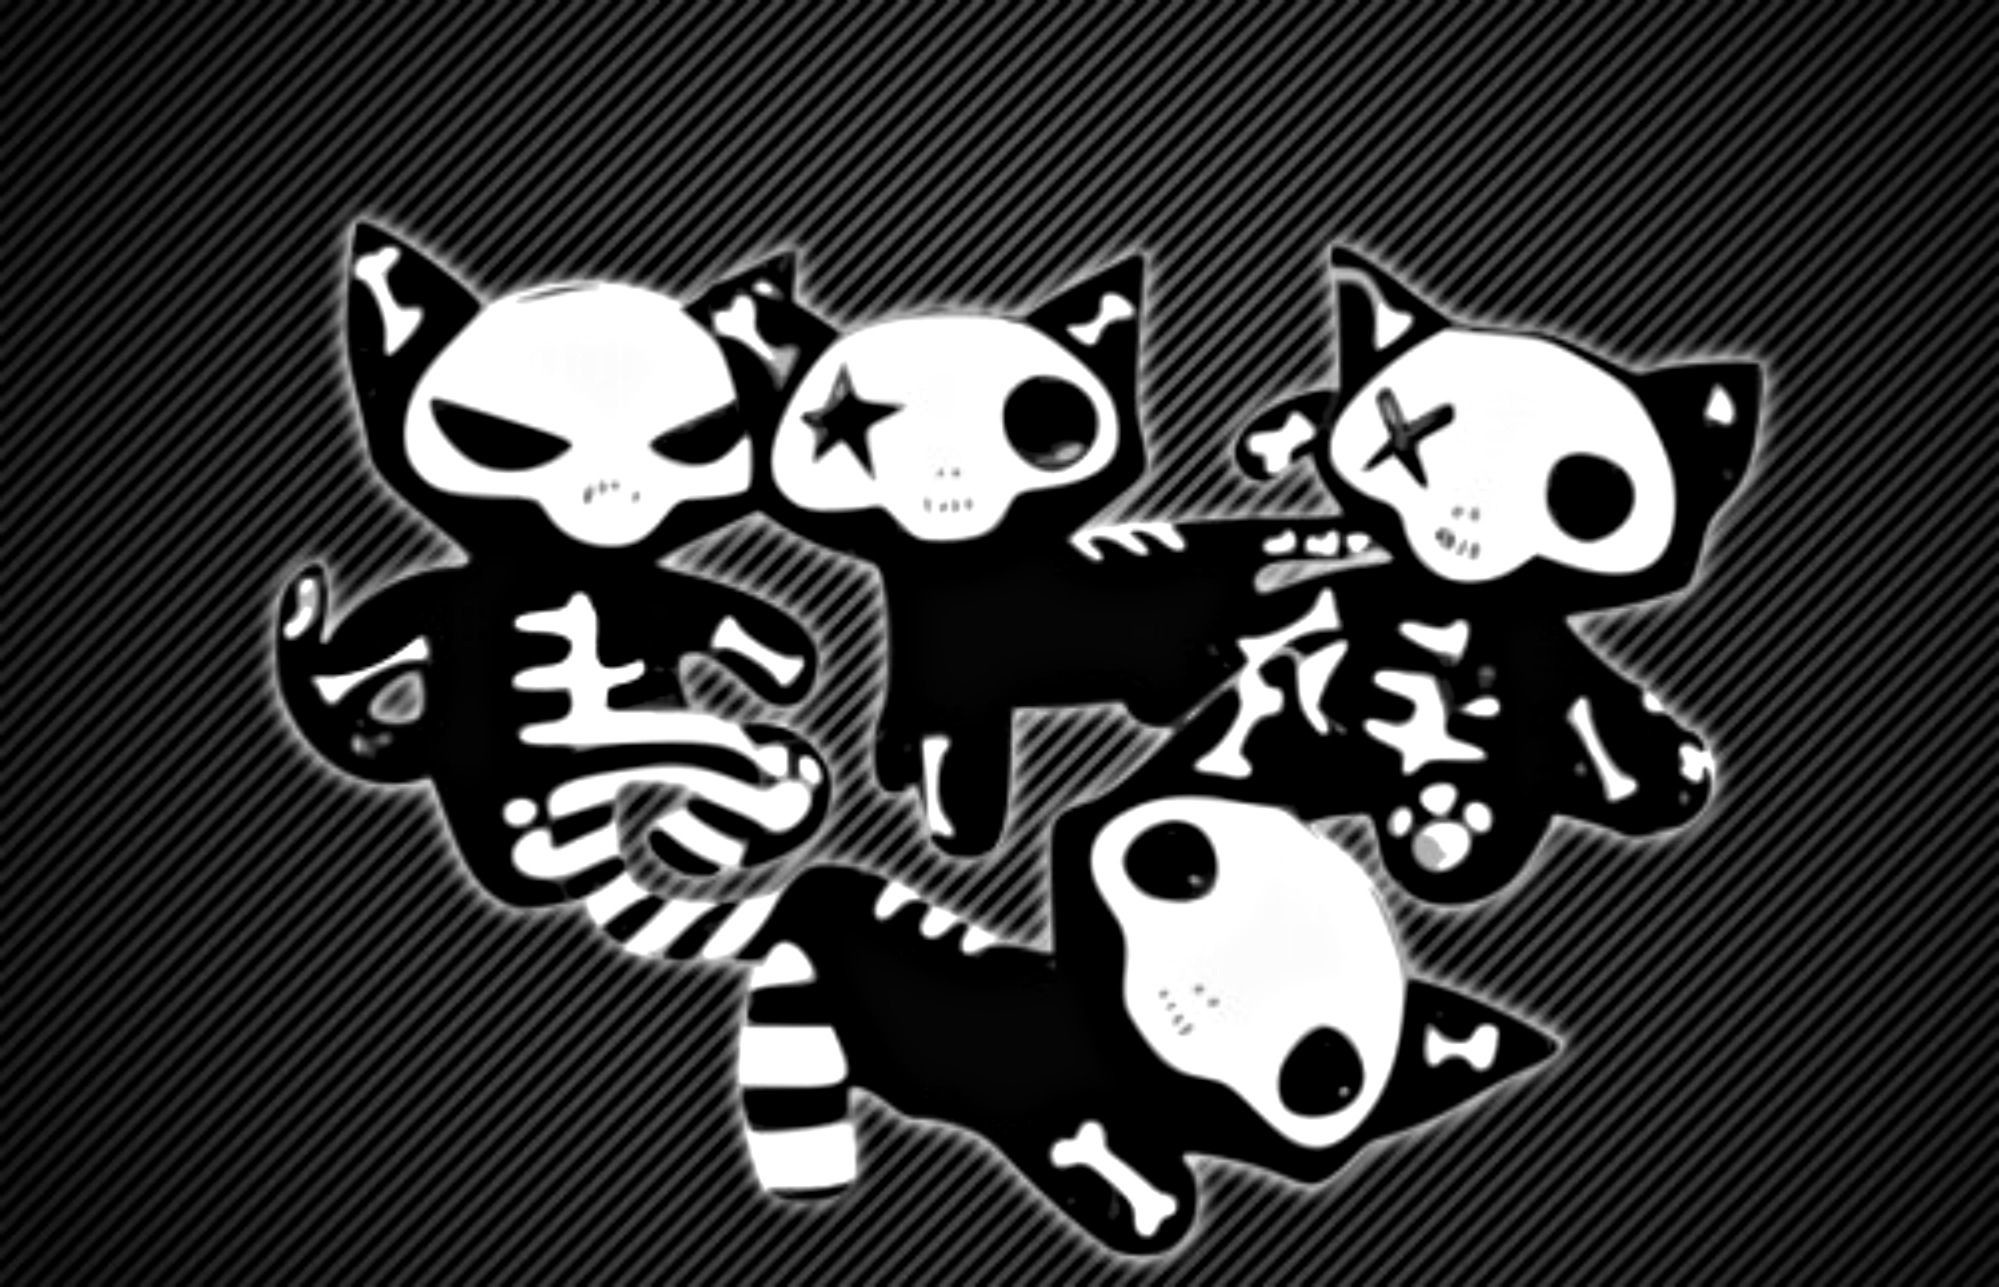 Beautiful Girly Skull Wallpapers HDQ. 0.298 MB